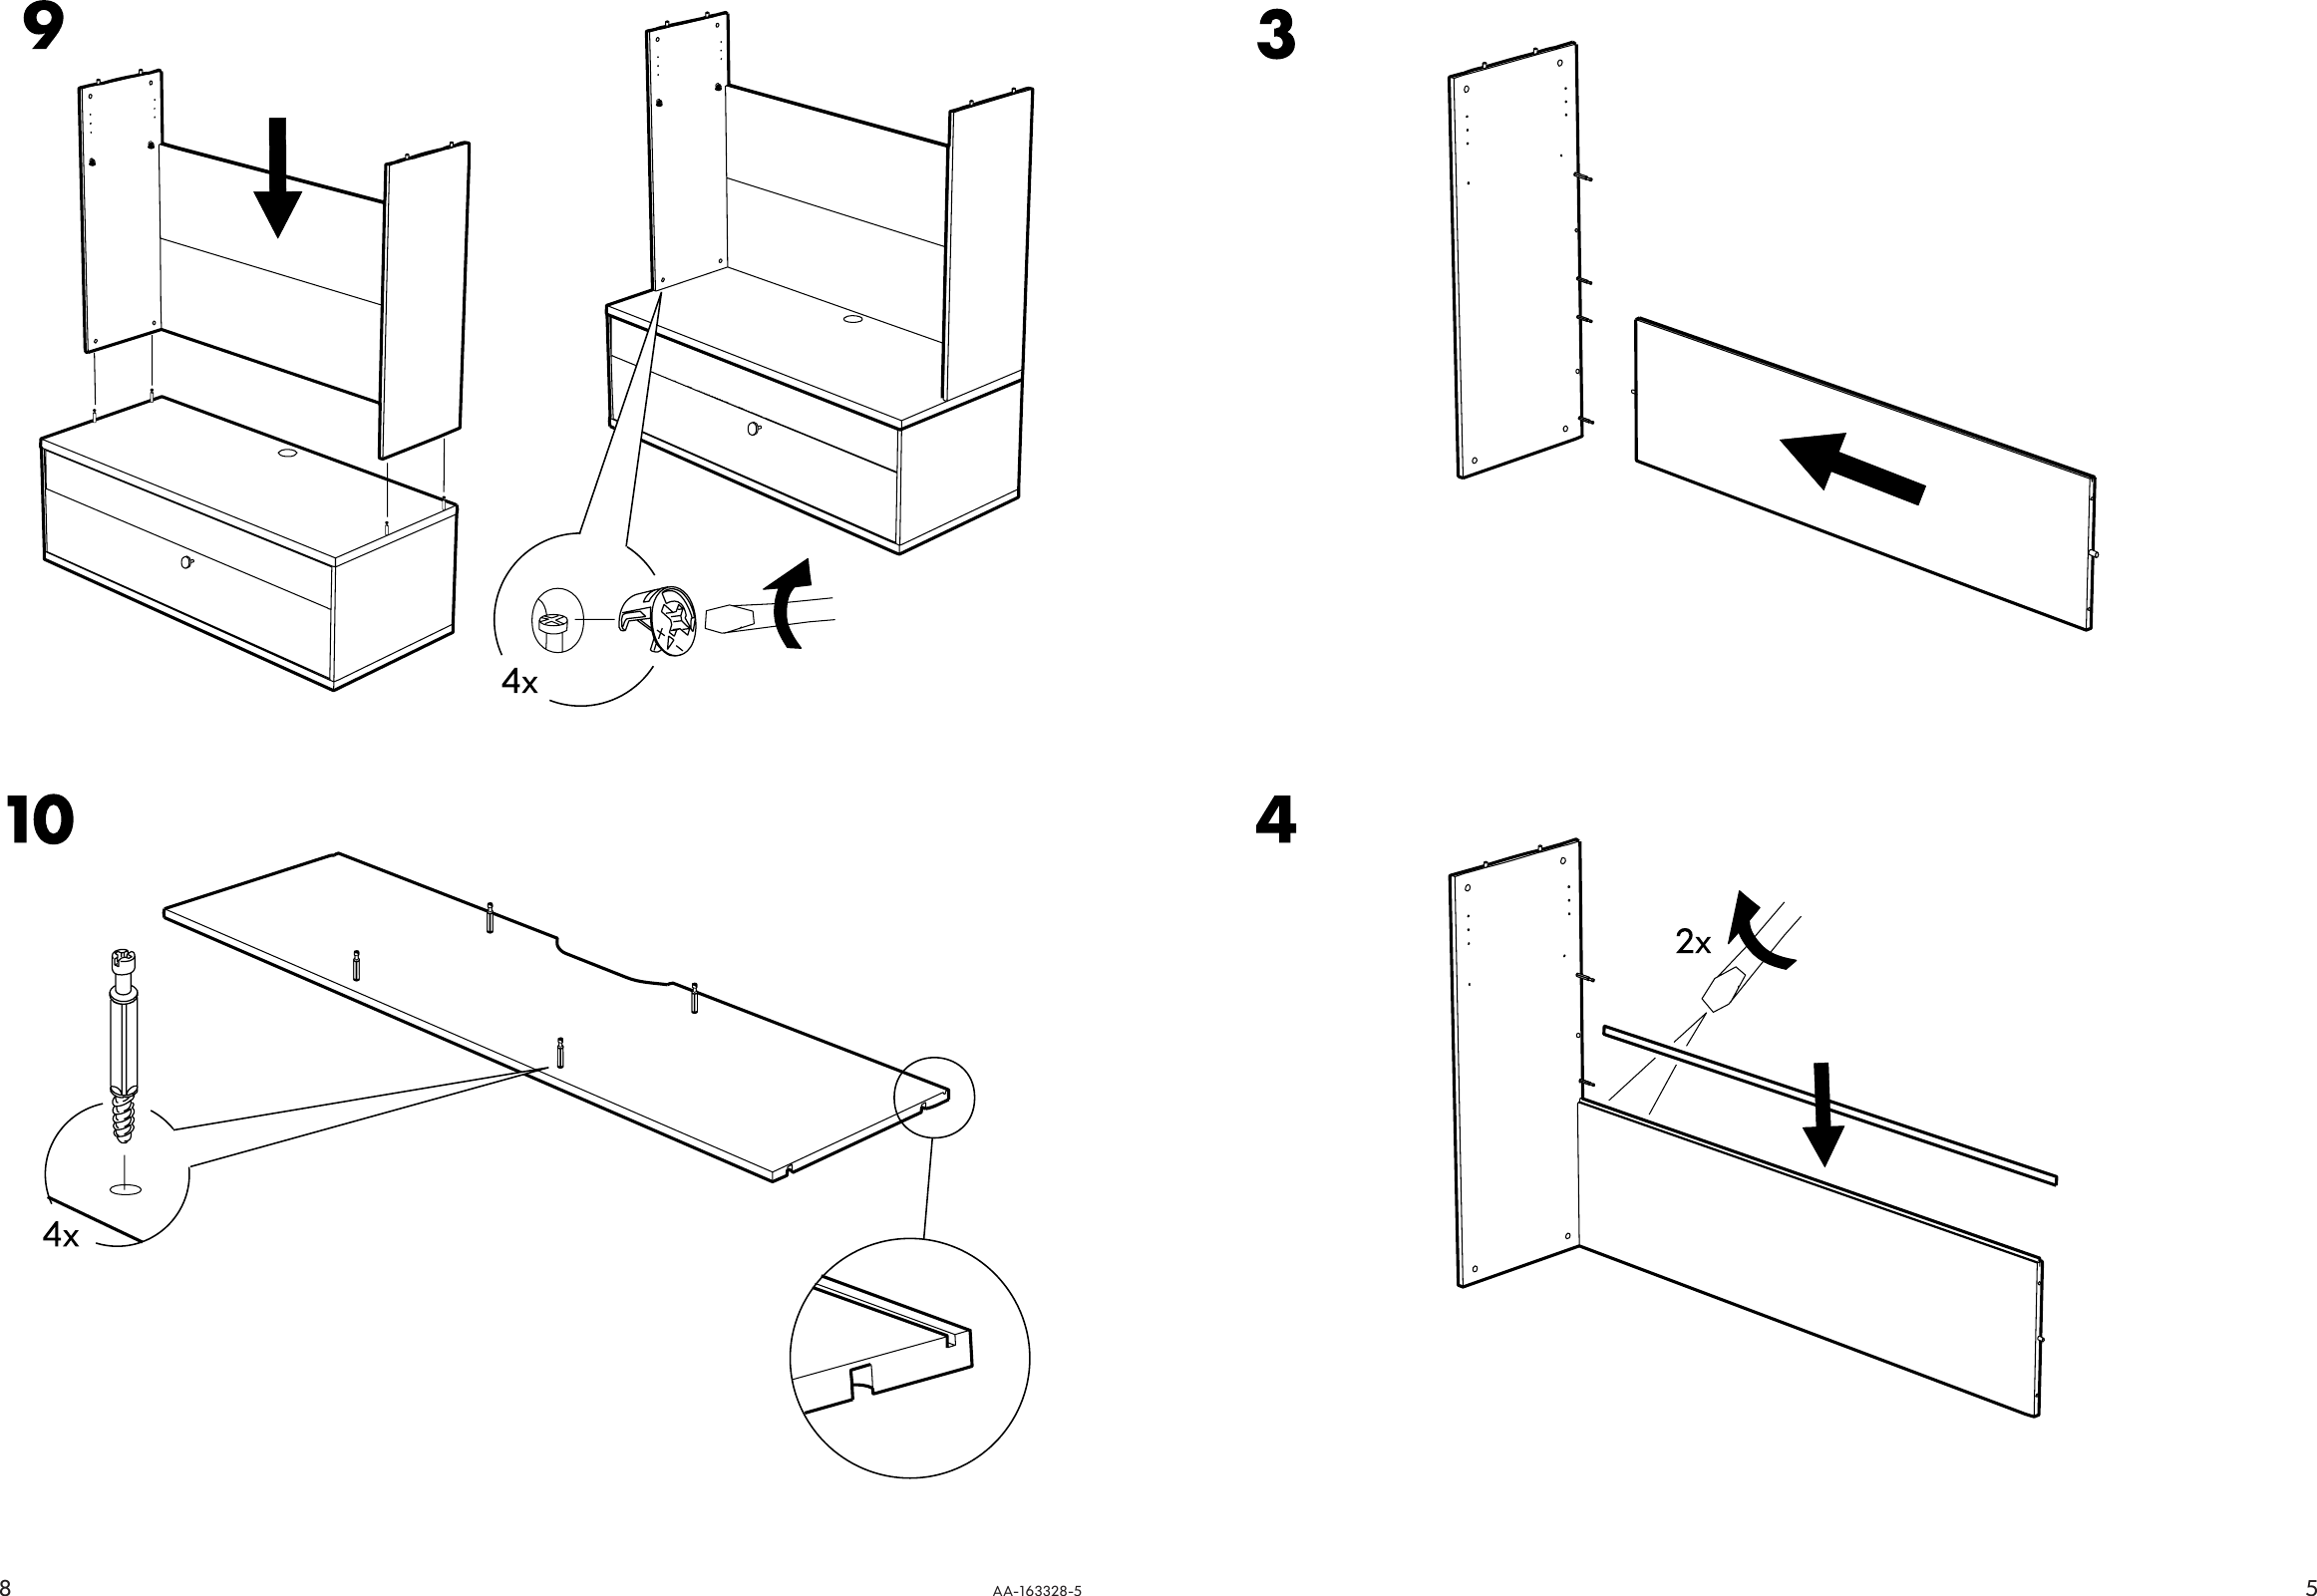 Page 5 of 6 - Ikea Ikea-Bonde-Add-On-For-Tv-Unit-57X40-Assembly-Instruction-3  Ikea-bonde-add-on-for-tv-unit-57x40-assembly-instruction